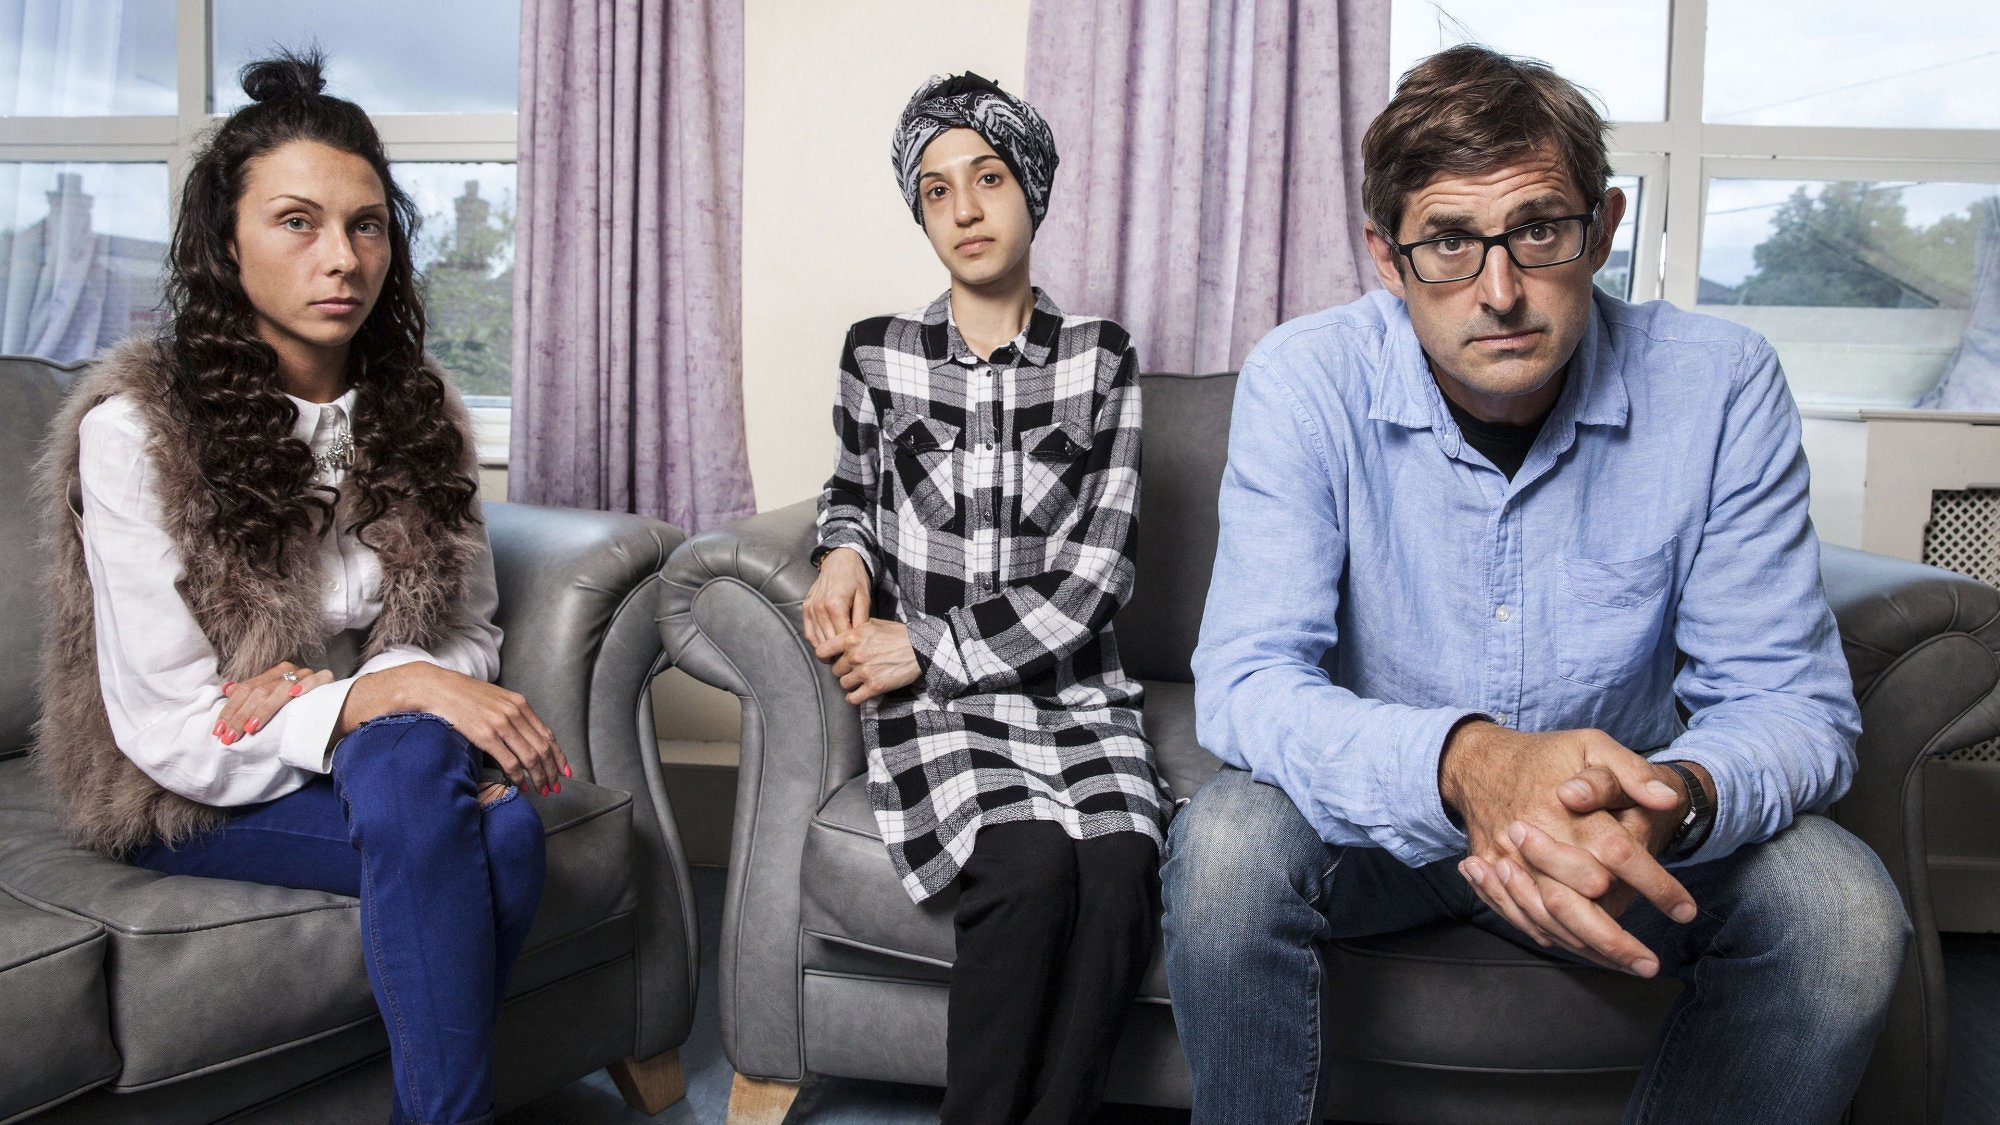 Louis Theroux: Anorexins offer